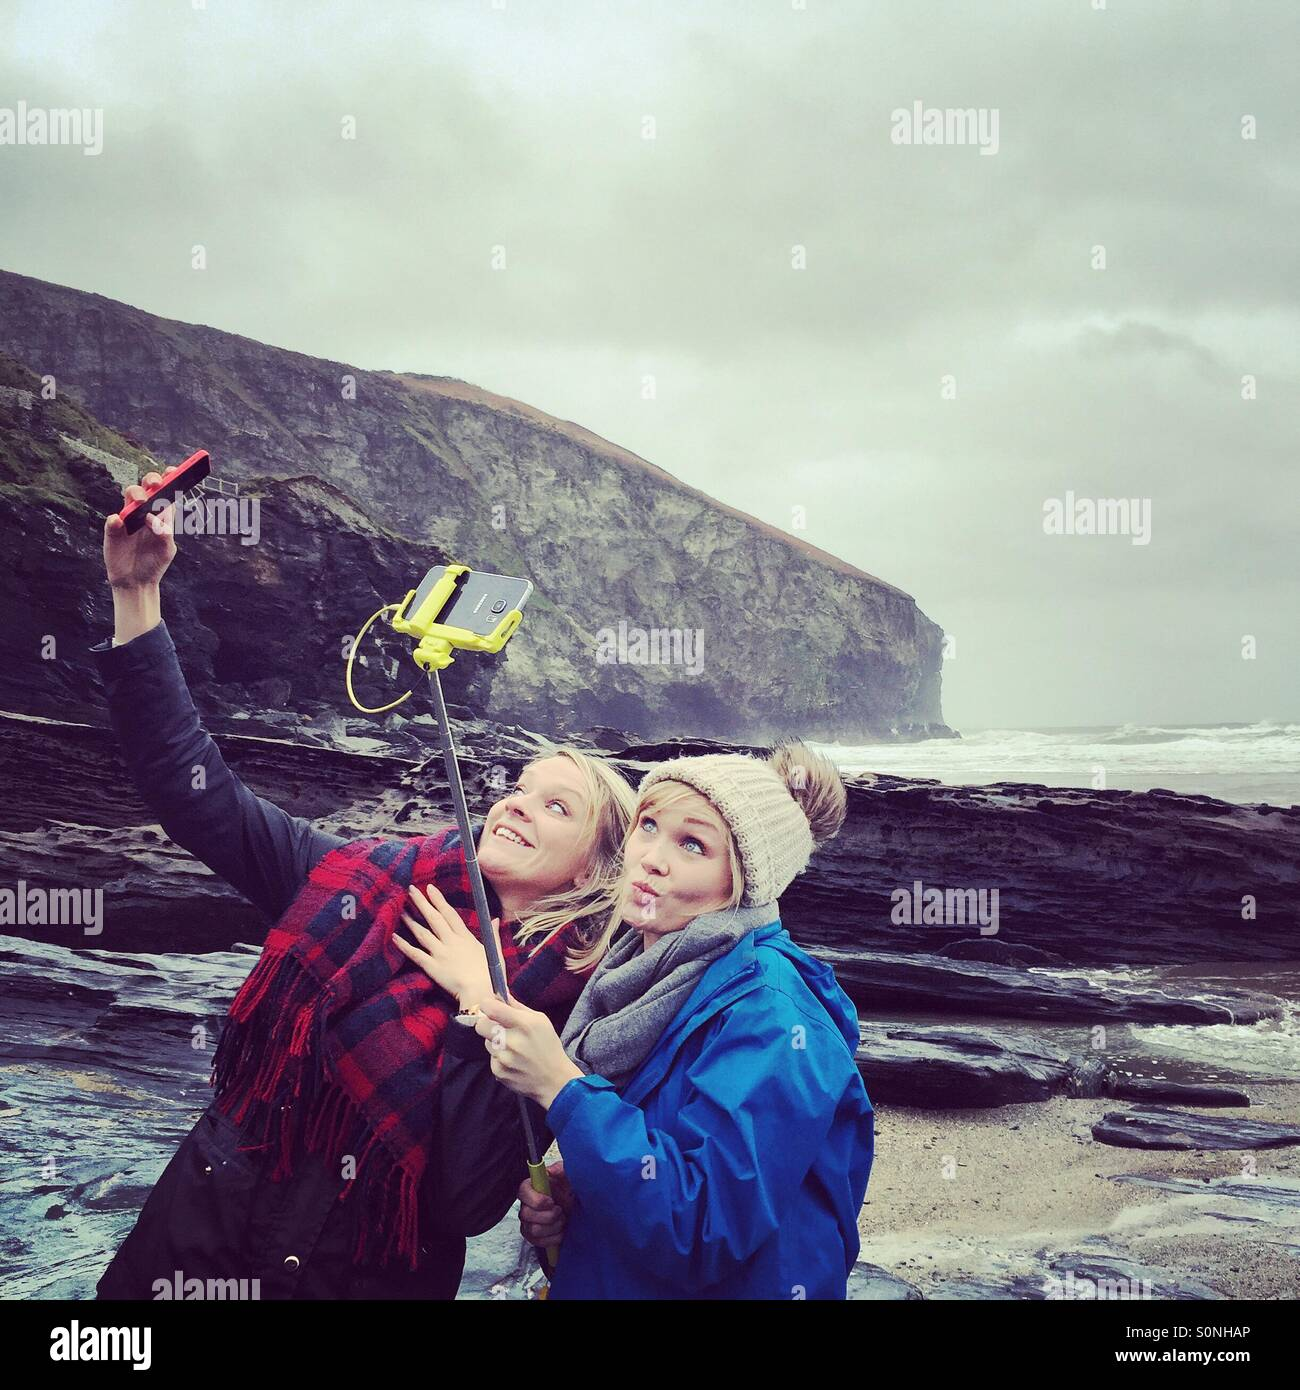 Two girls taking selfies - Stock Image